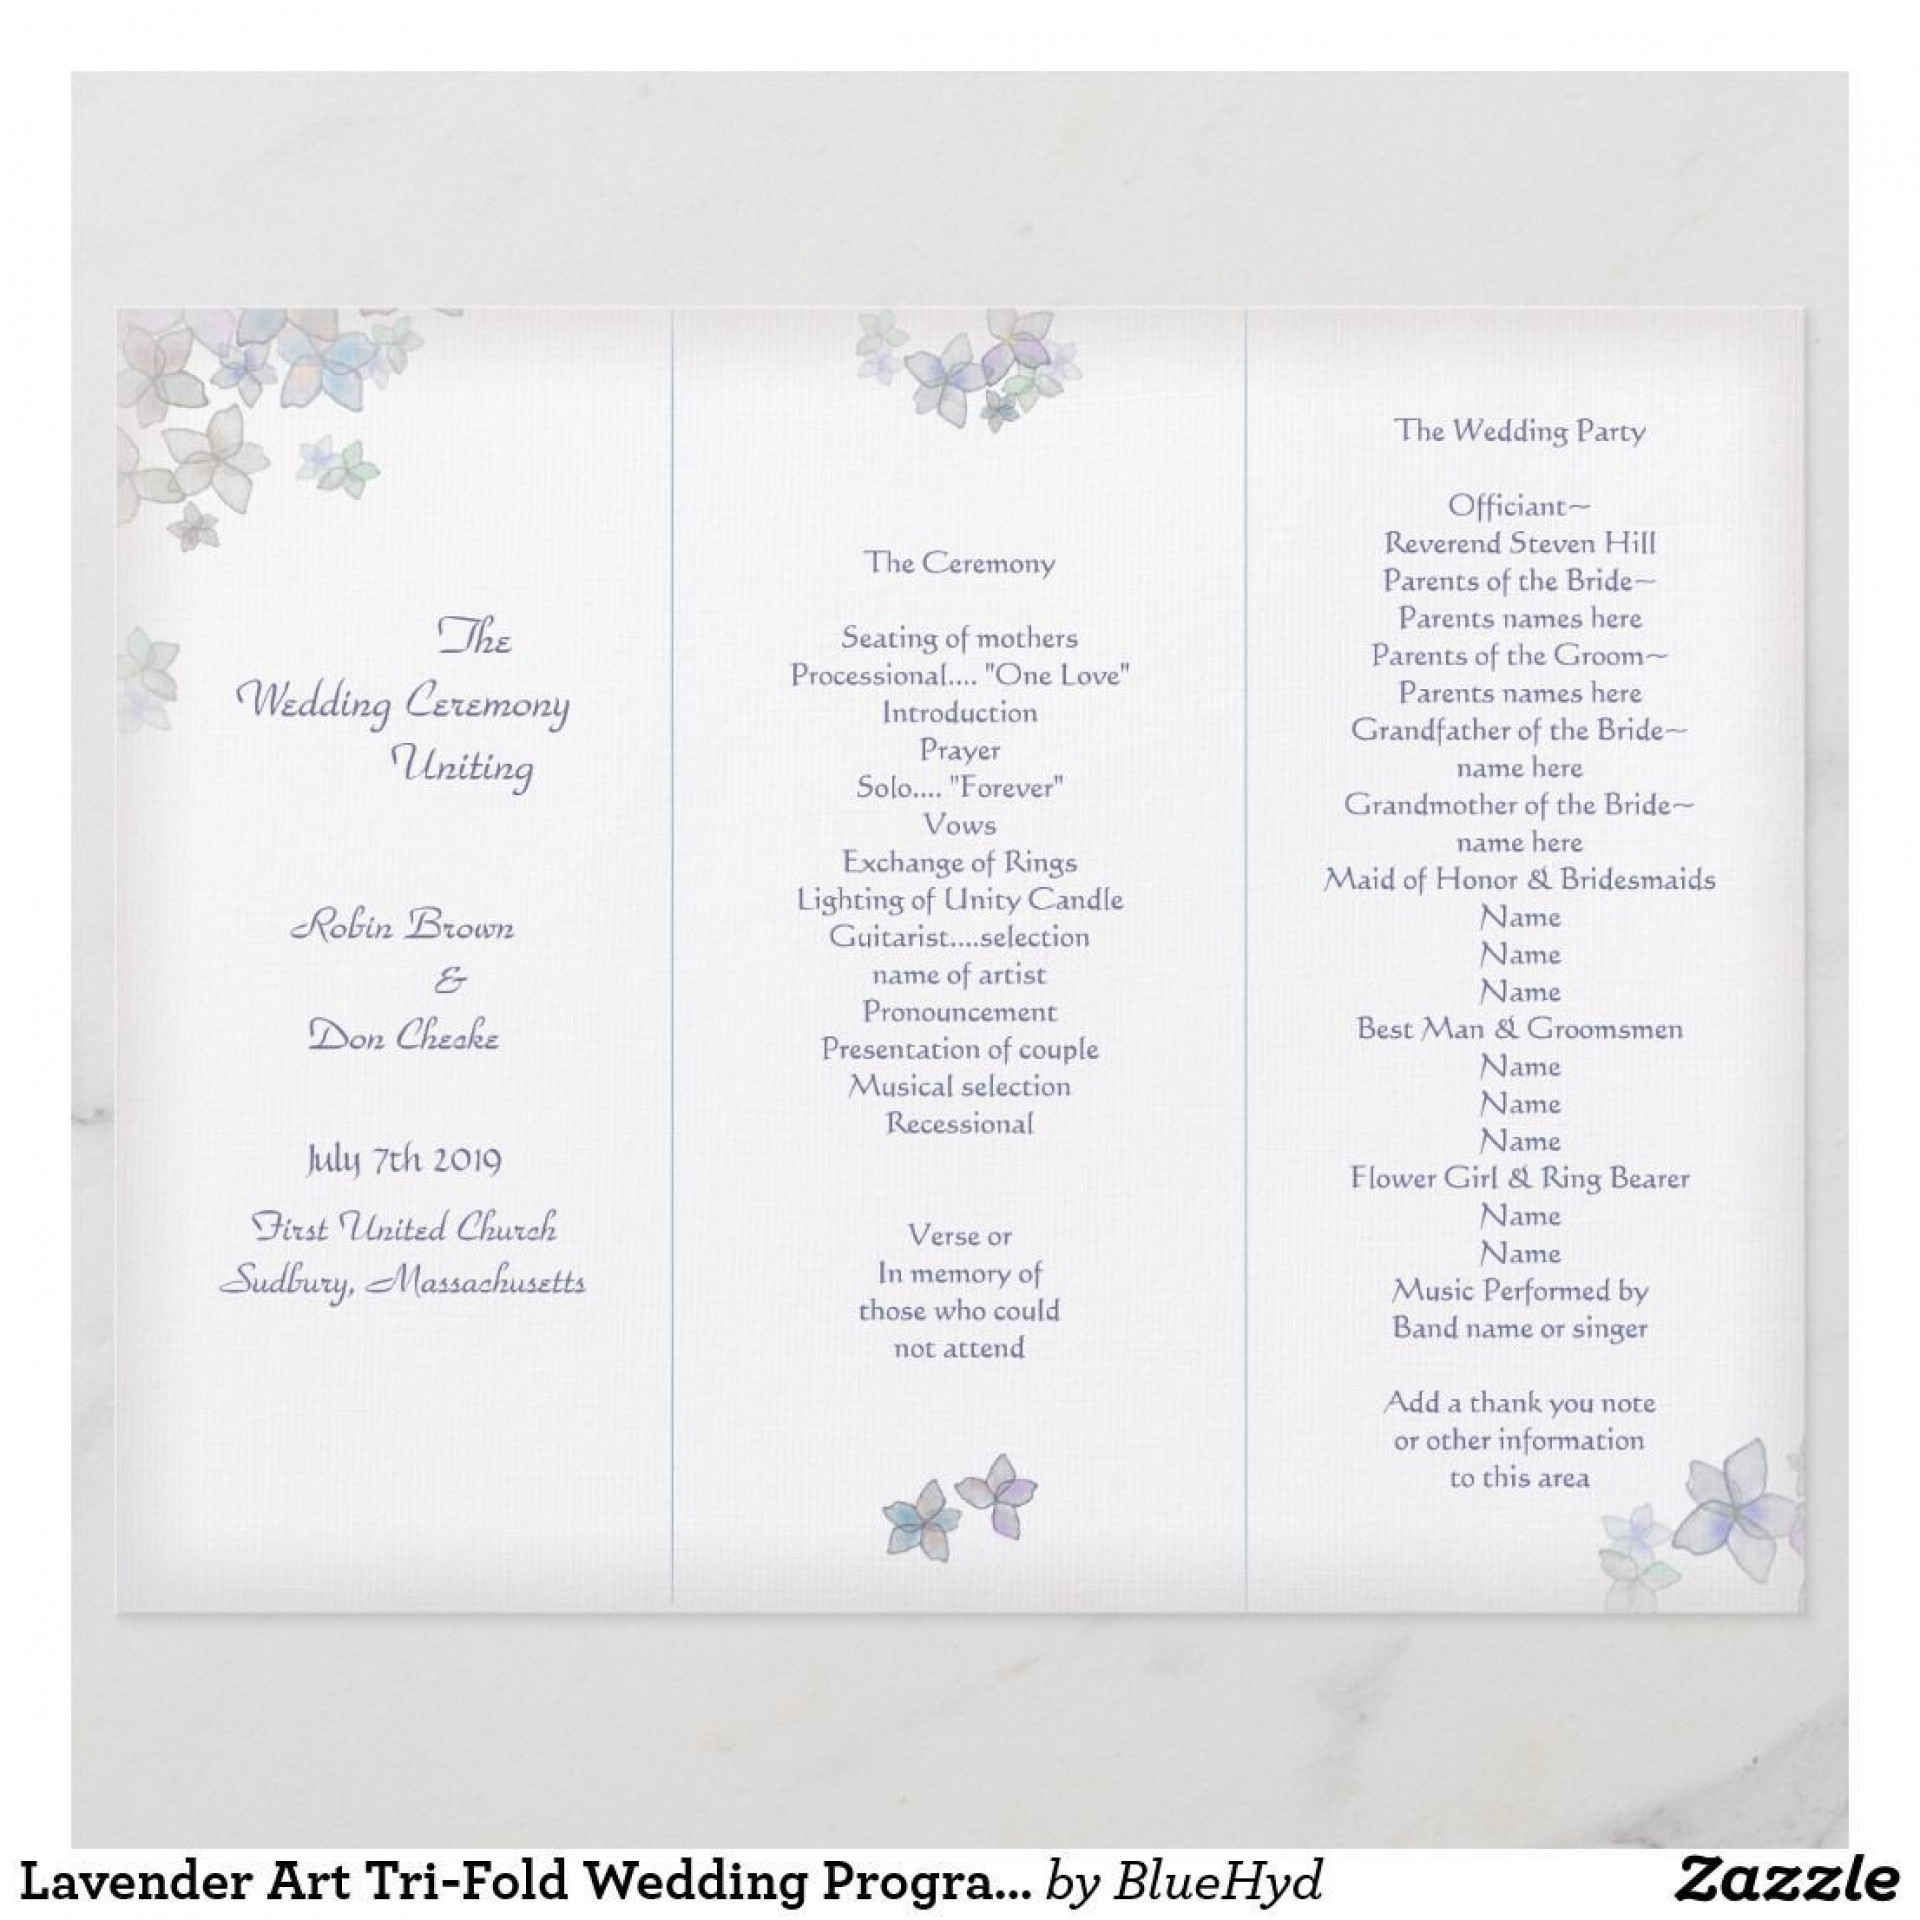 005 Unique Trifold Wedding Program Template Highest Clarity  Tri Fold Word Folded Example1920